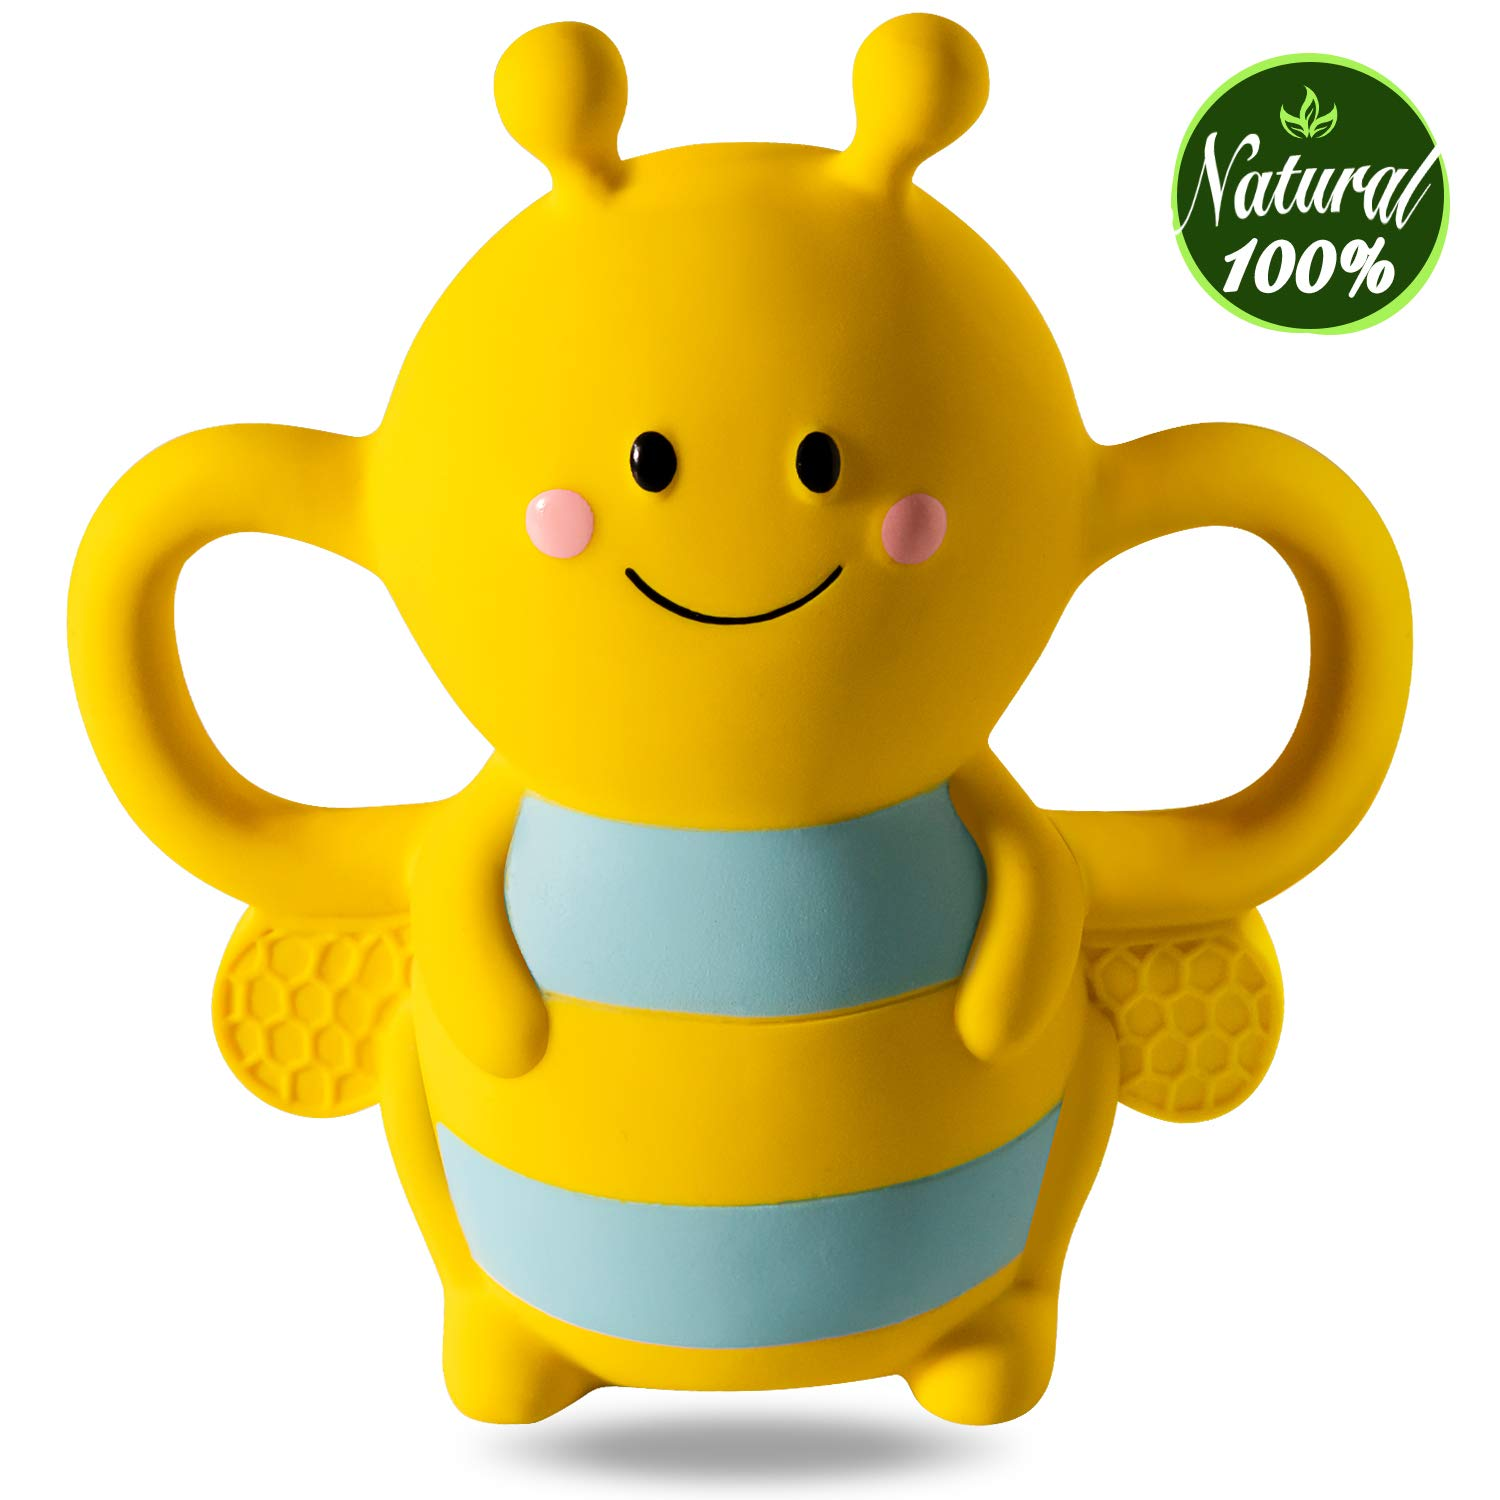 Buzzy Bee Multi-Textured Soft /& Soothing Easy-Hold Silicone Teether BPA Free ...